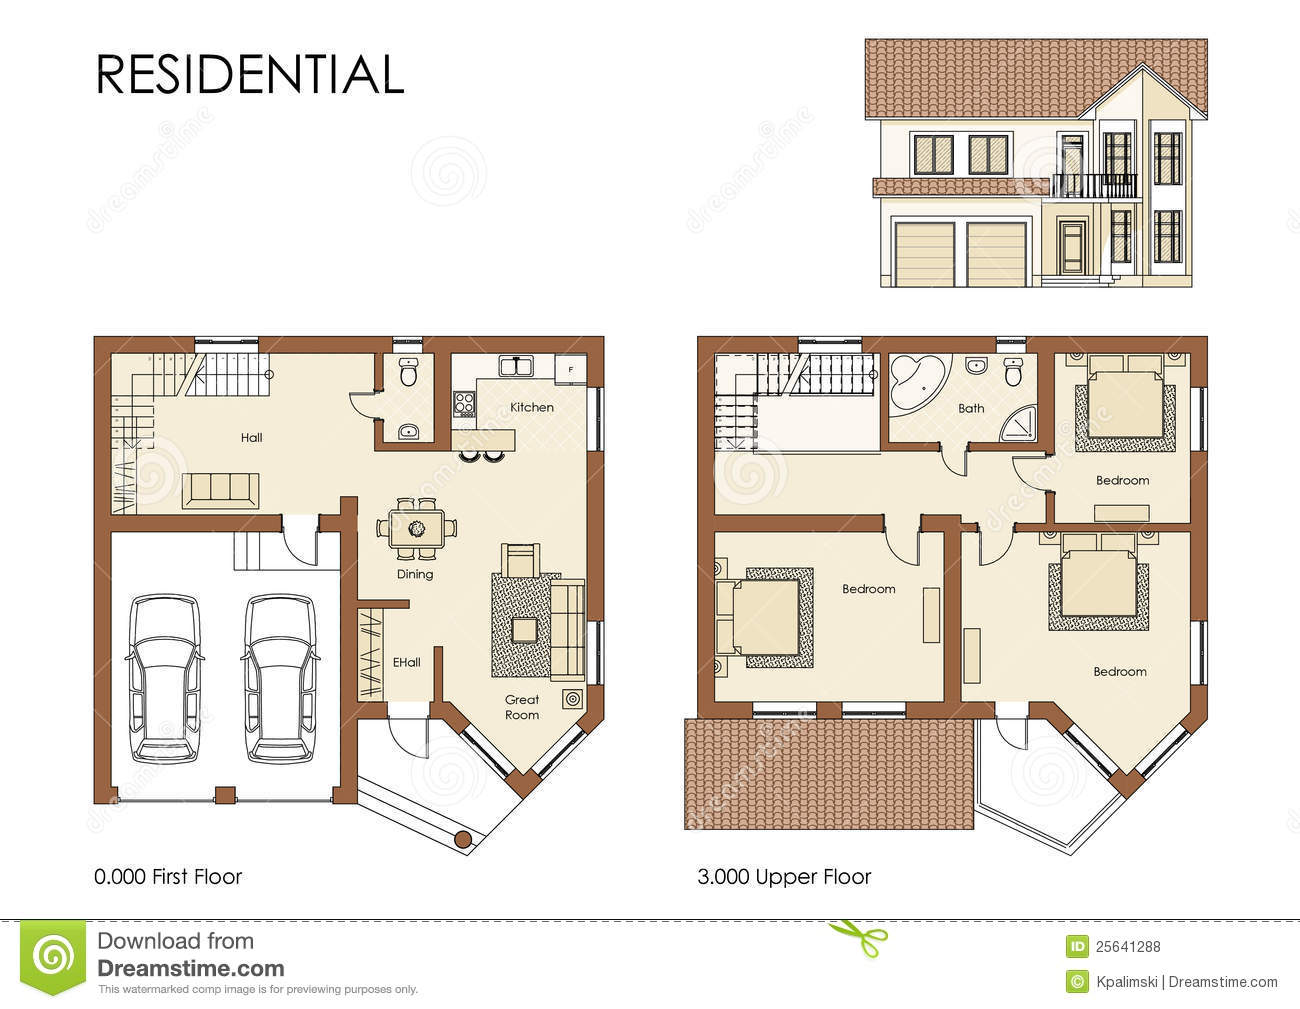 Residential house plan stock illustration illustration of for Residential blueprints